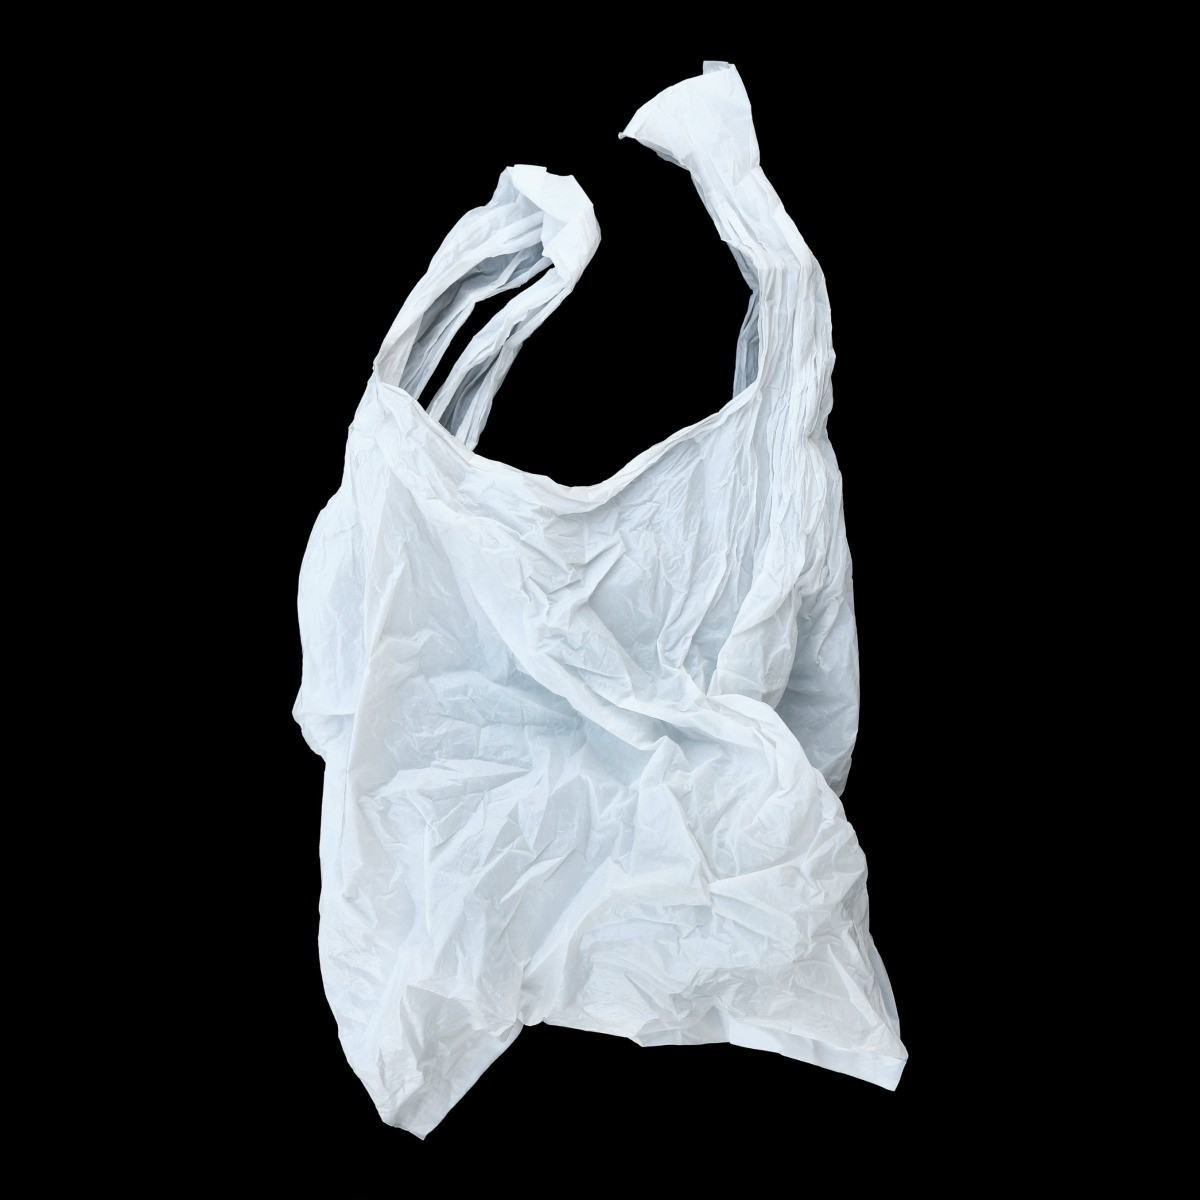 Storing Plastic Grocery Bags | ThriftyFun